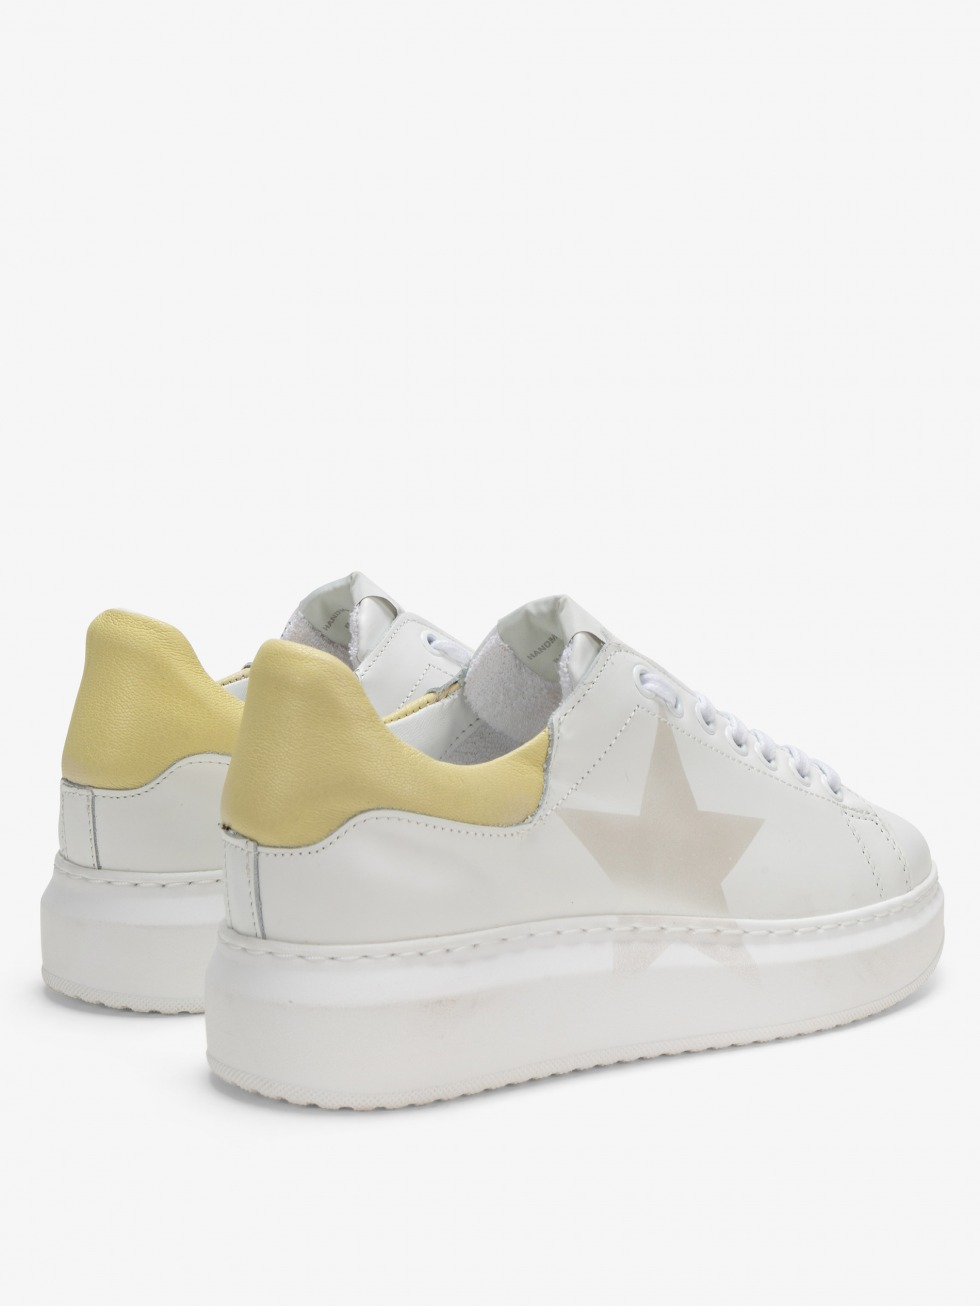 sneakers-con-plateau-bianche-angel-seventies-yellow-madreperla-stella (2)